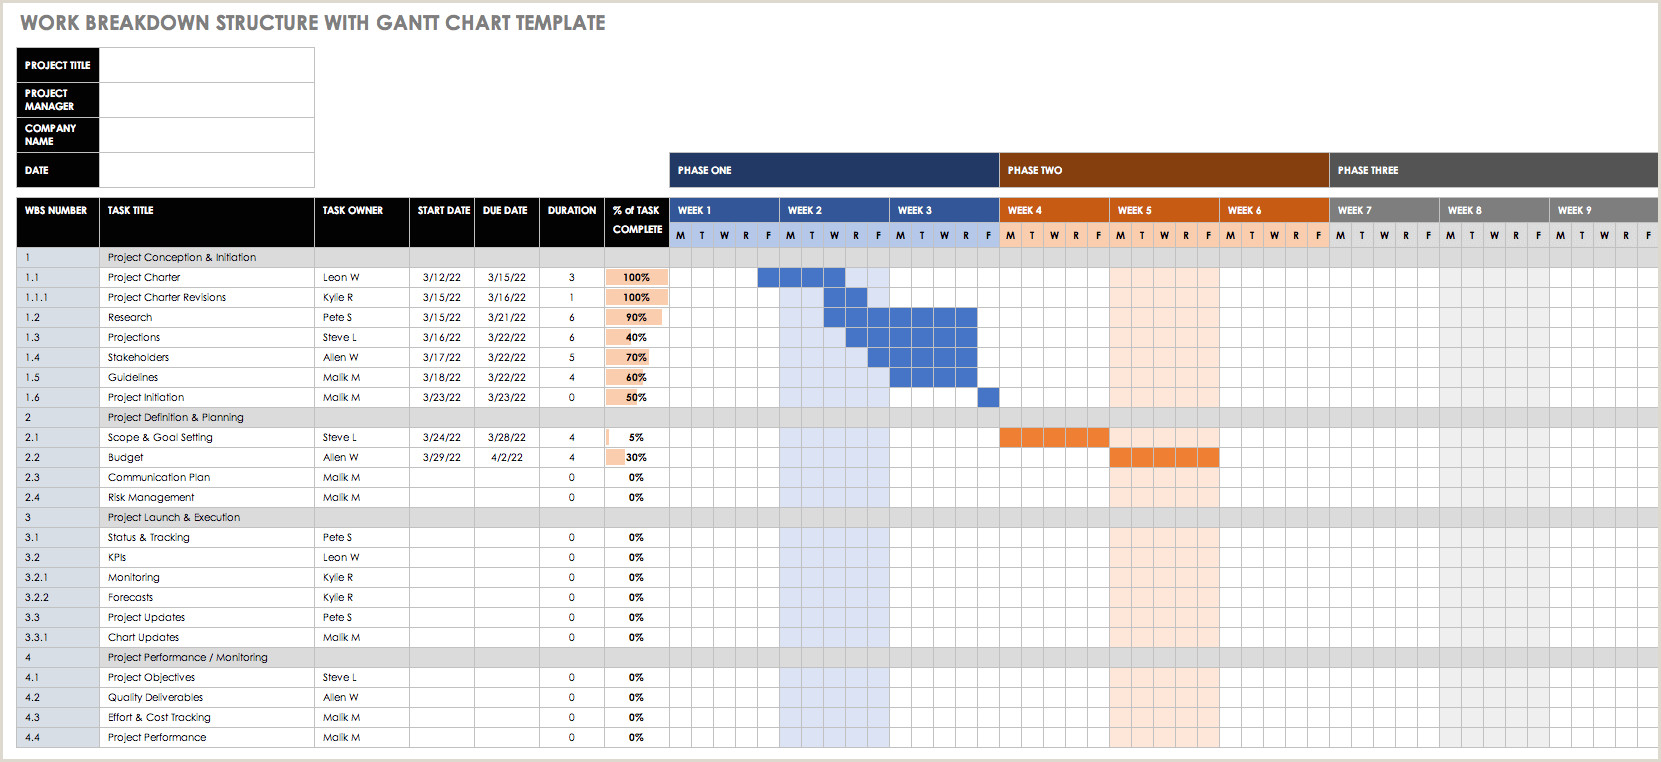 3 Week Look Ahead Schedule Template Excel Critical Path Method for Construction